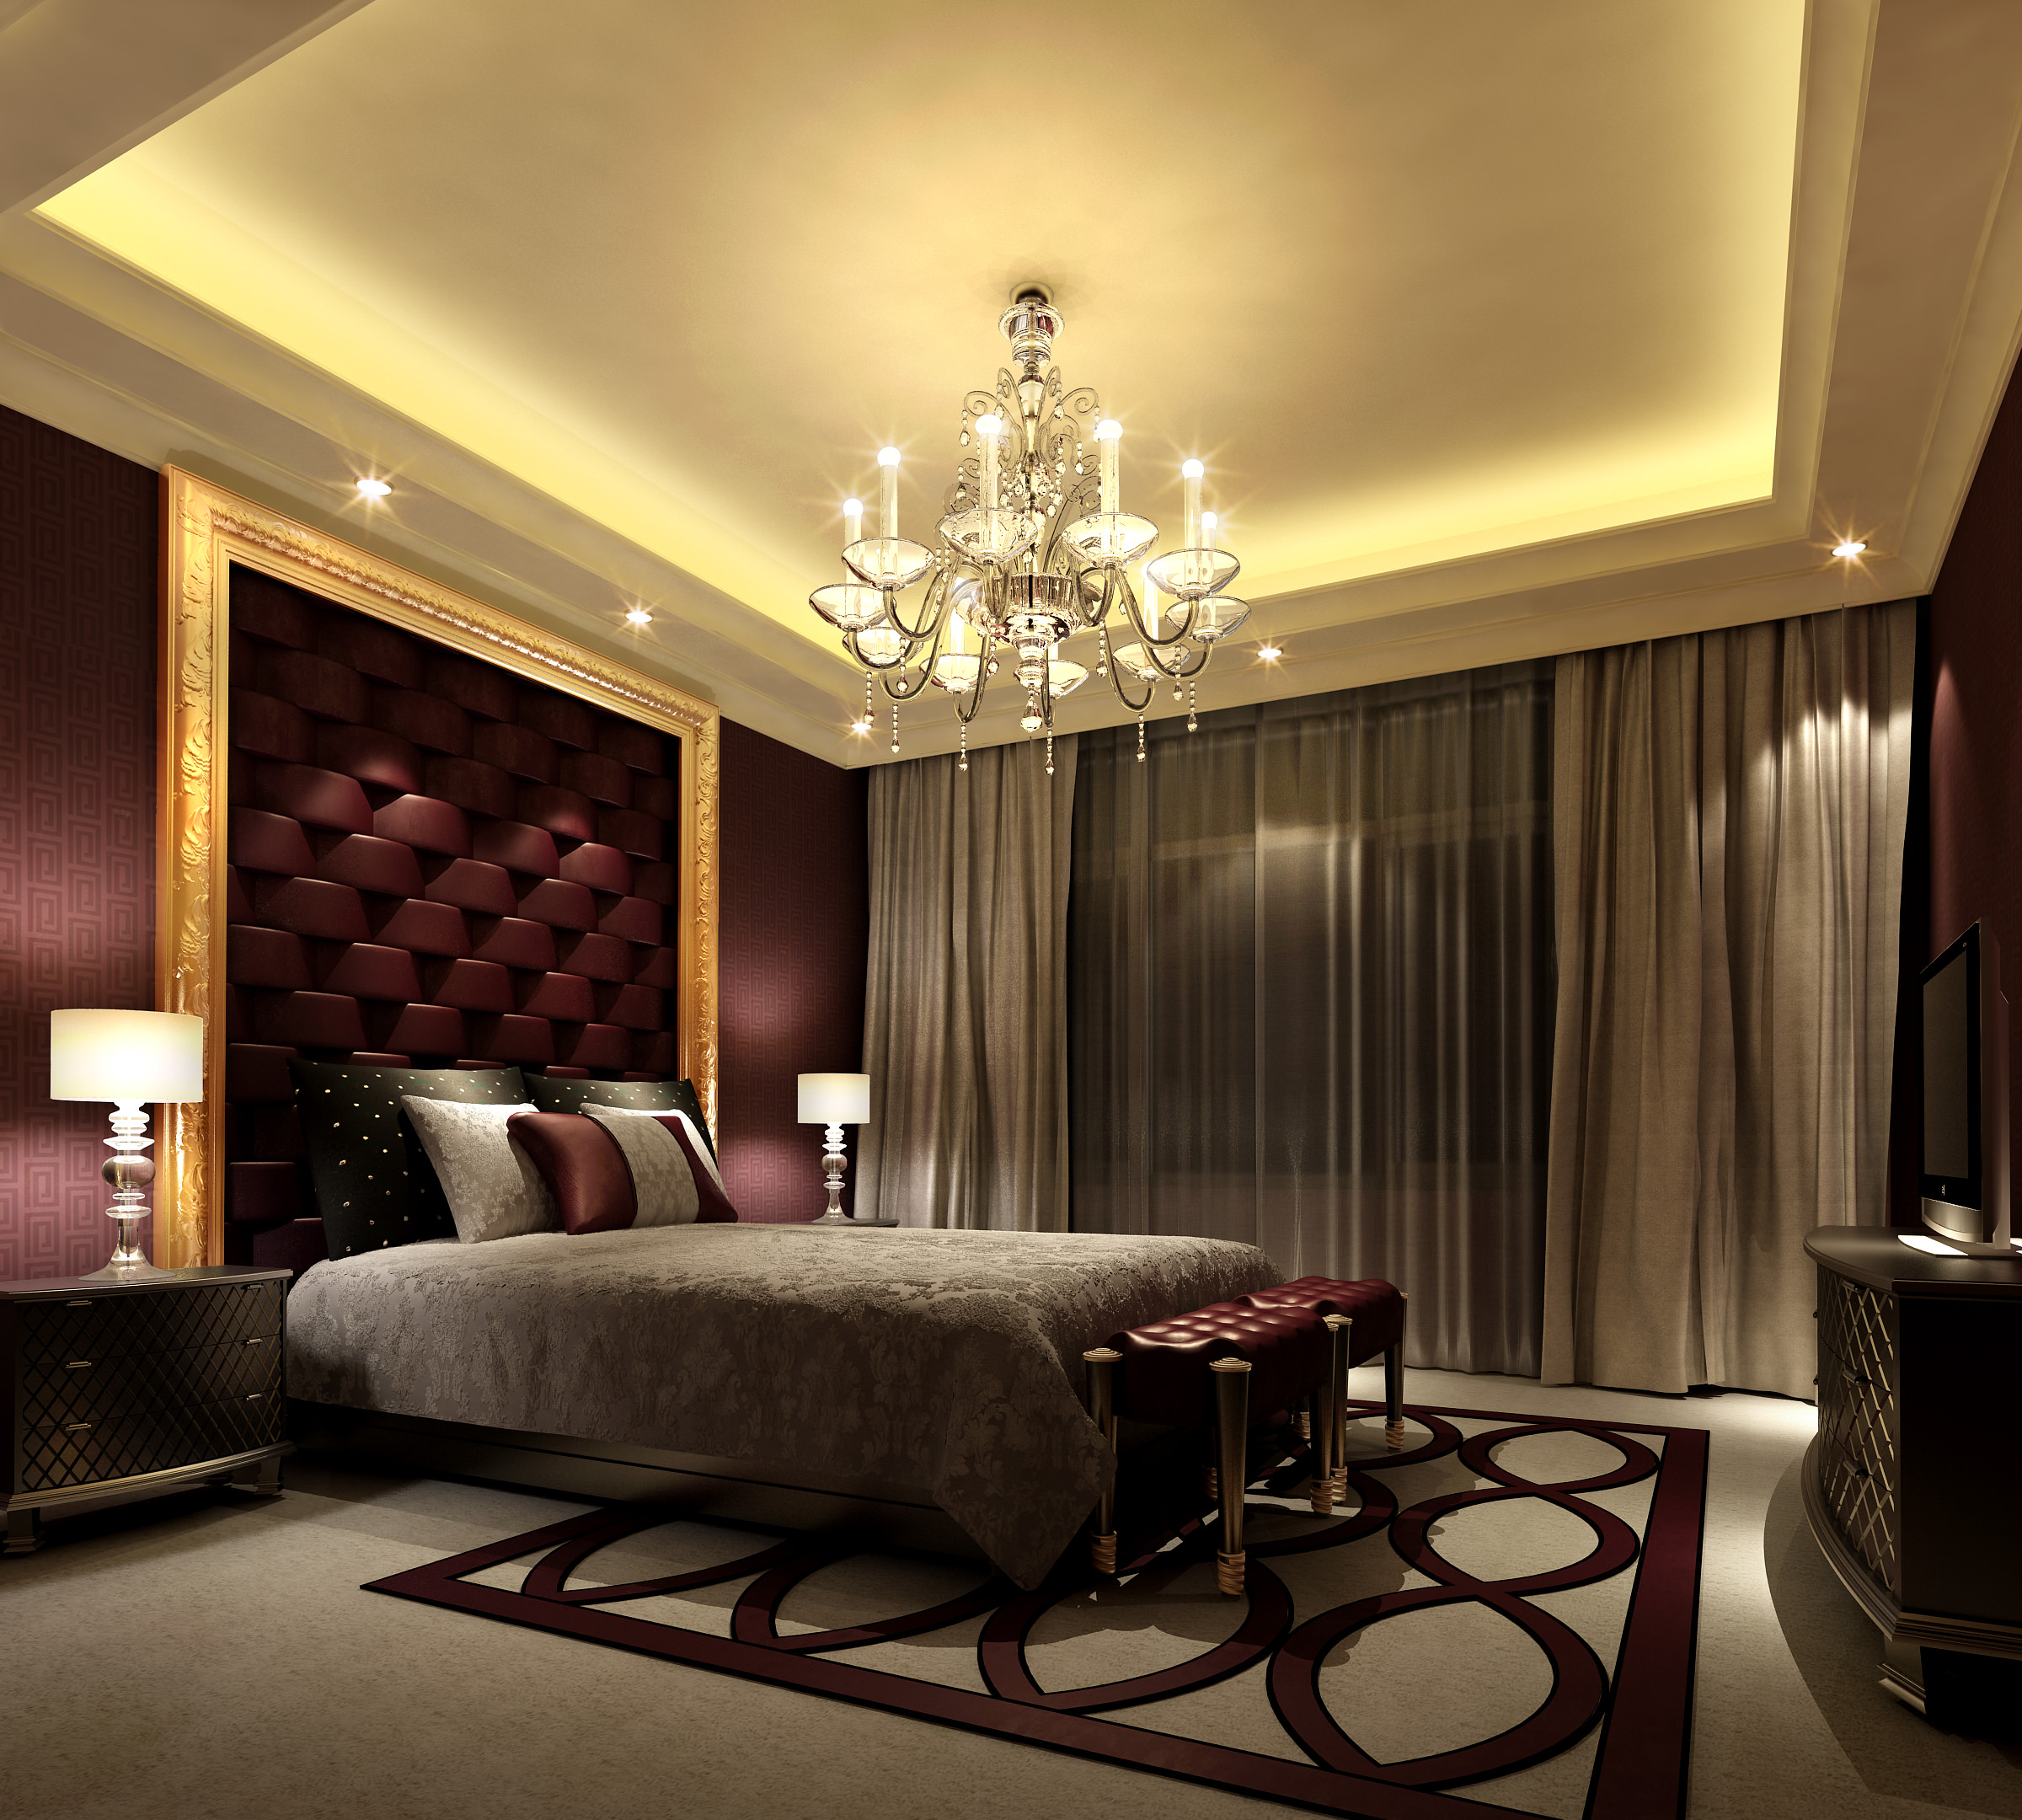 Elegant bedroom furnishings 3D | CGTrader